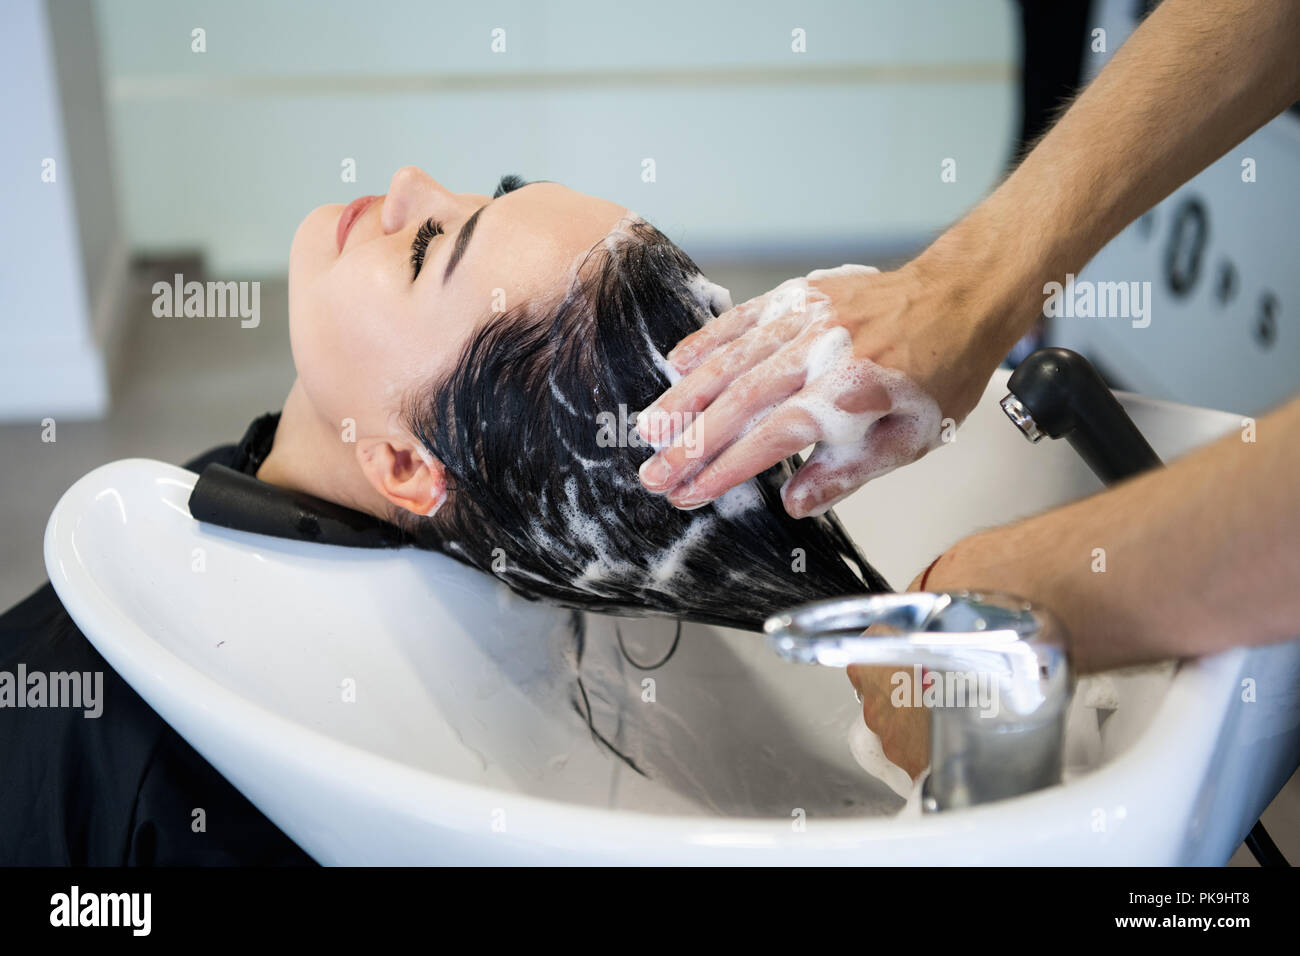 Unrecognizable professional hairdresser washing hair to her client. Beautiful hairdresser washing hair to her client lady in hairdressing saloon. Client sitting with her eyes closed. - Stock Image